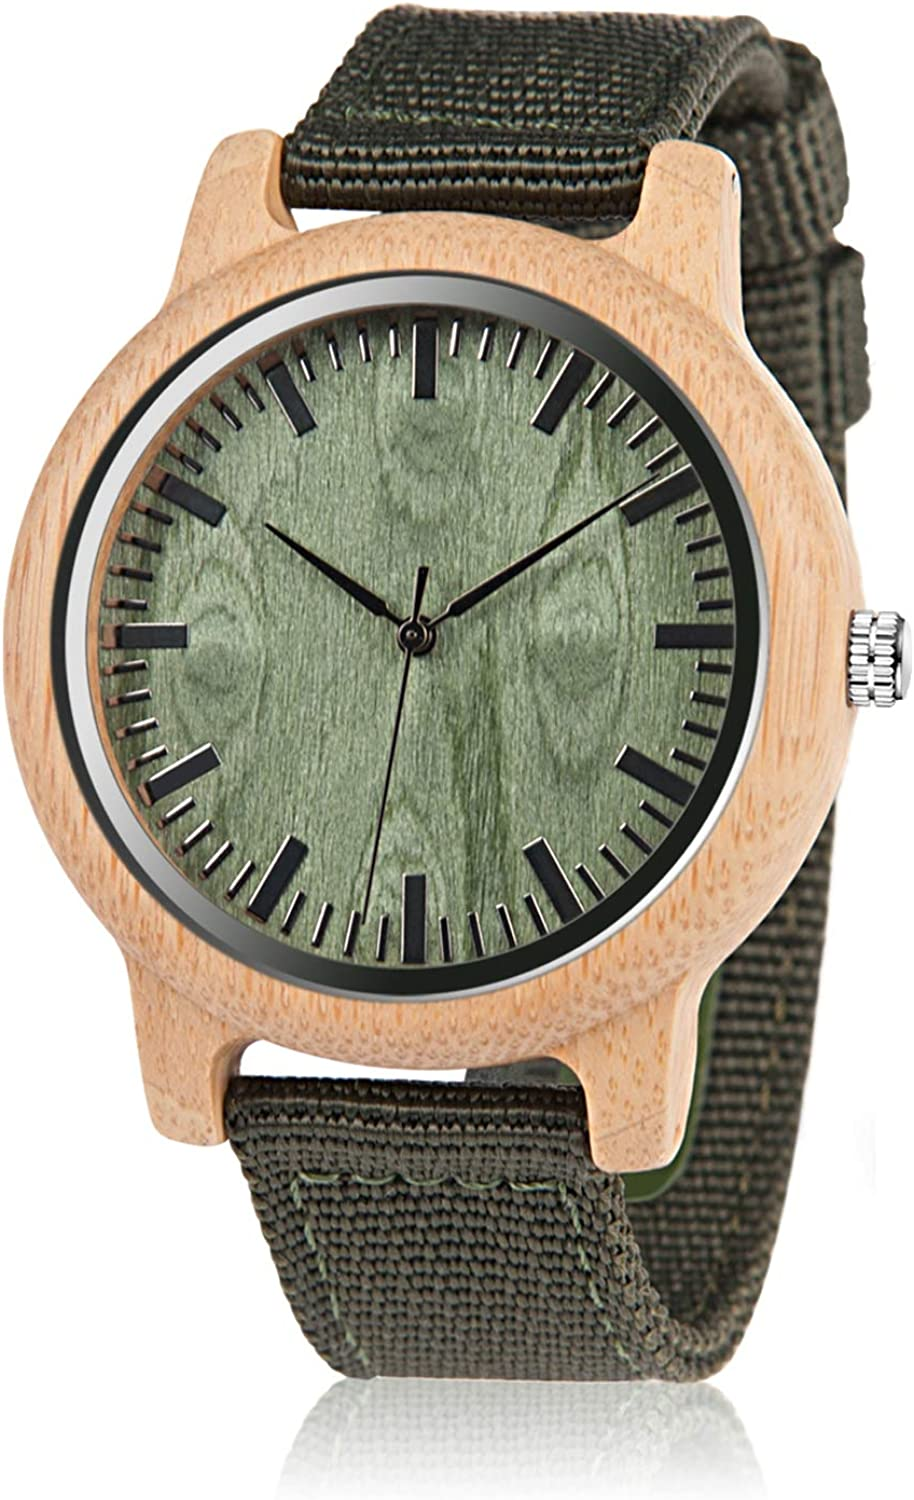 BOBO BIRD Unisex Bamboo Wooden Watch for Men and Women Analog Quartz Lightweight Handmade Casual Watches with Green Nylon Strap